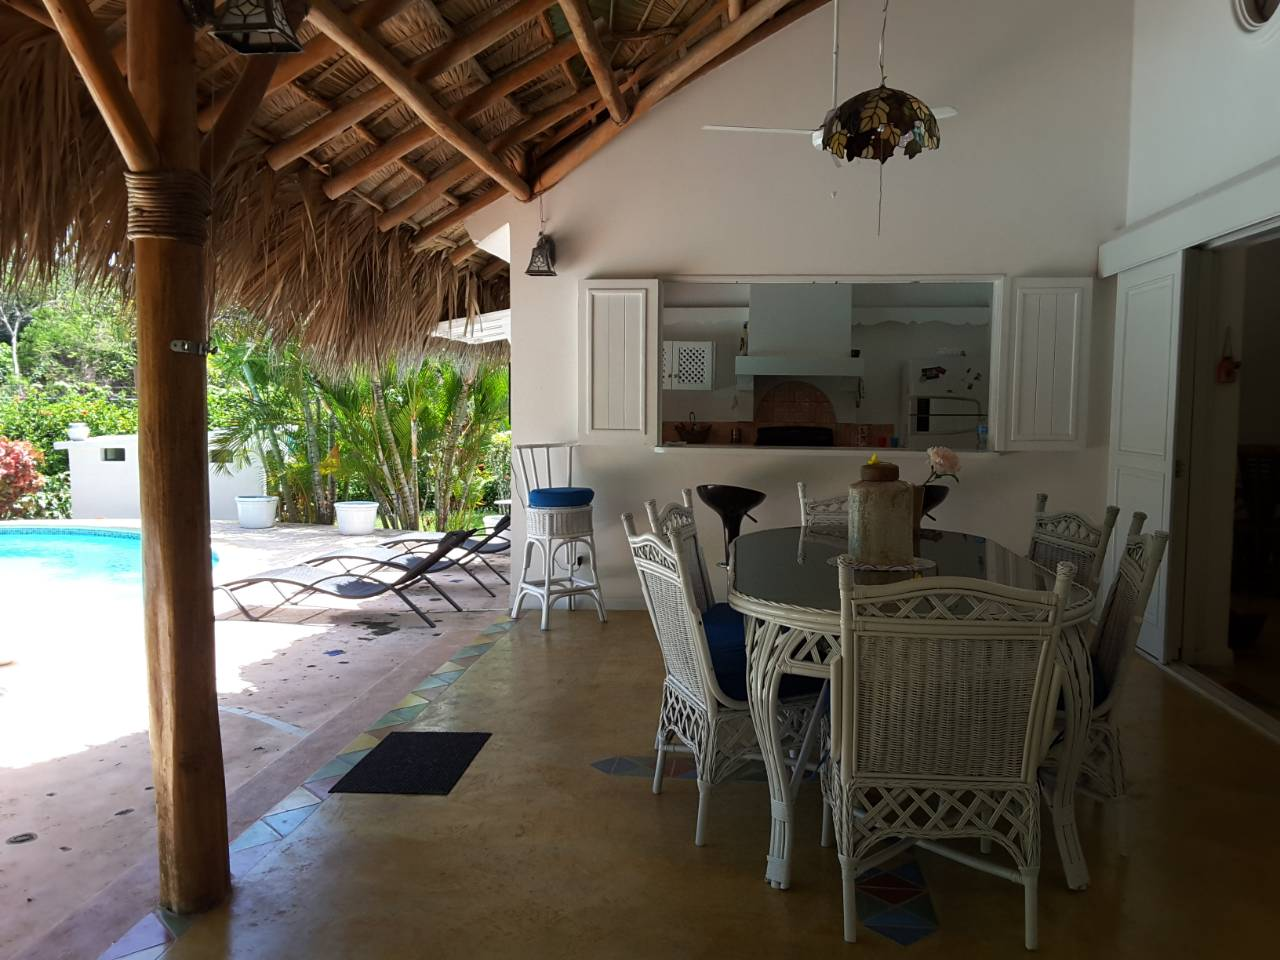 Villa for sale in Las Terrenas perfect for bed and breakfast16.jpeg